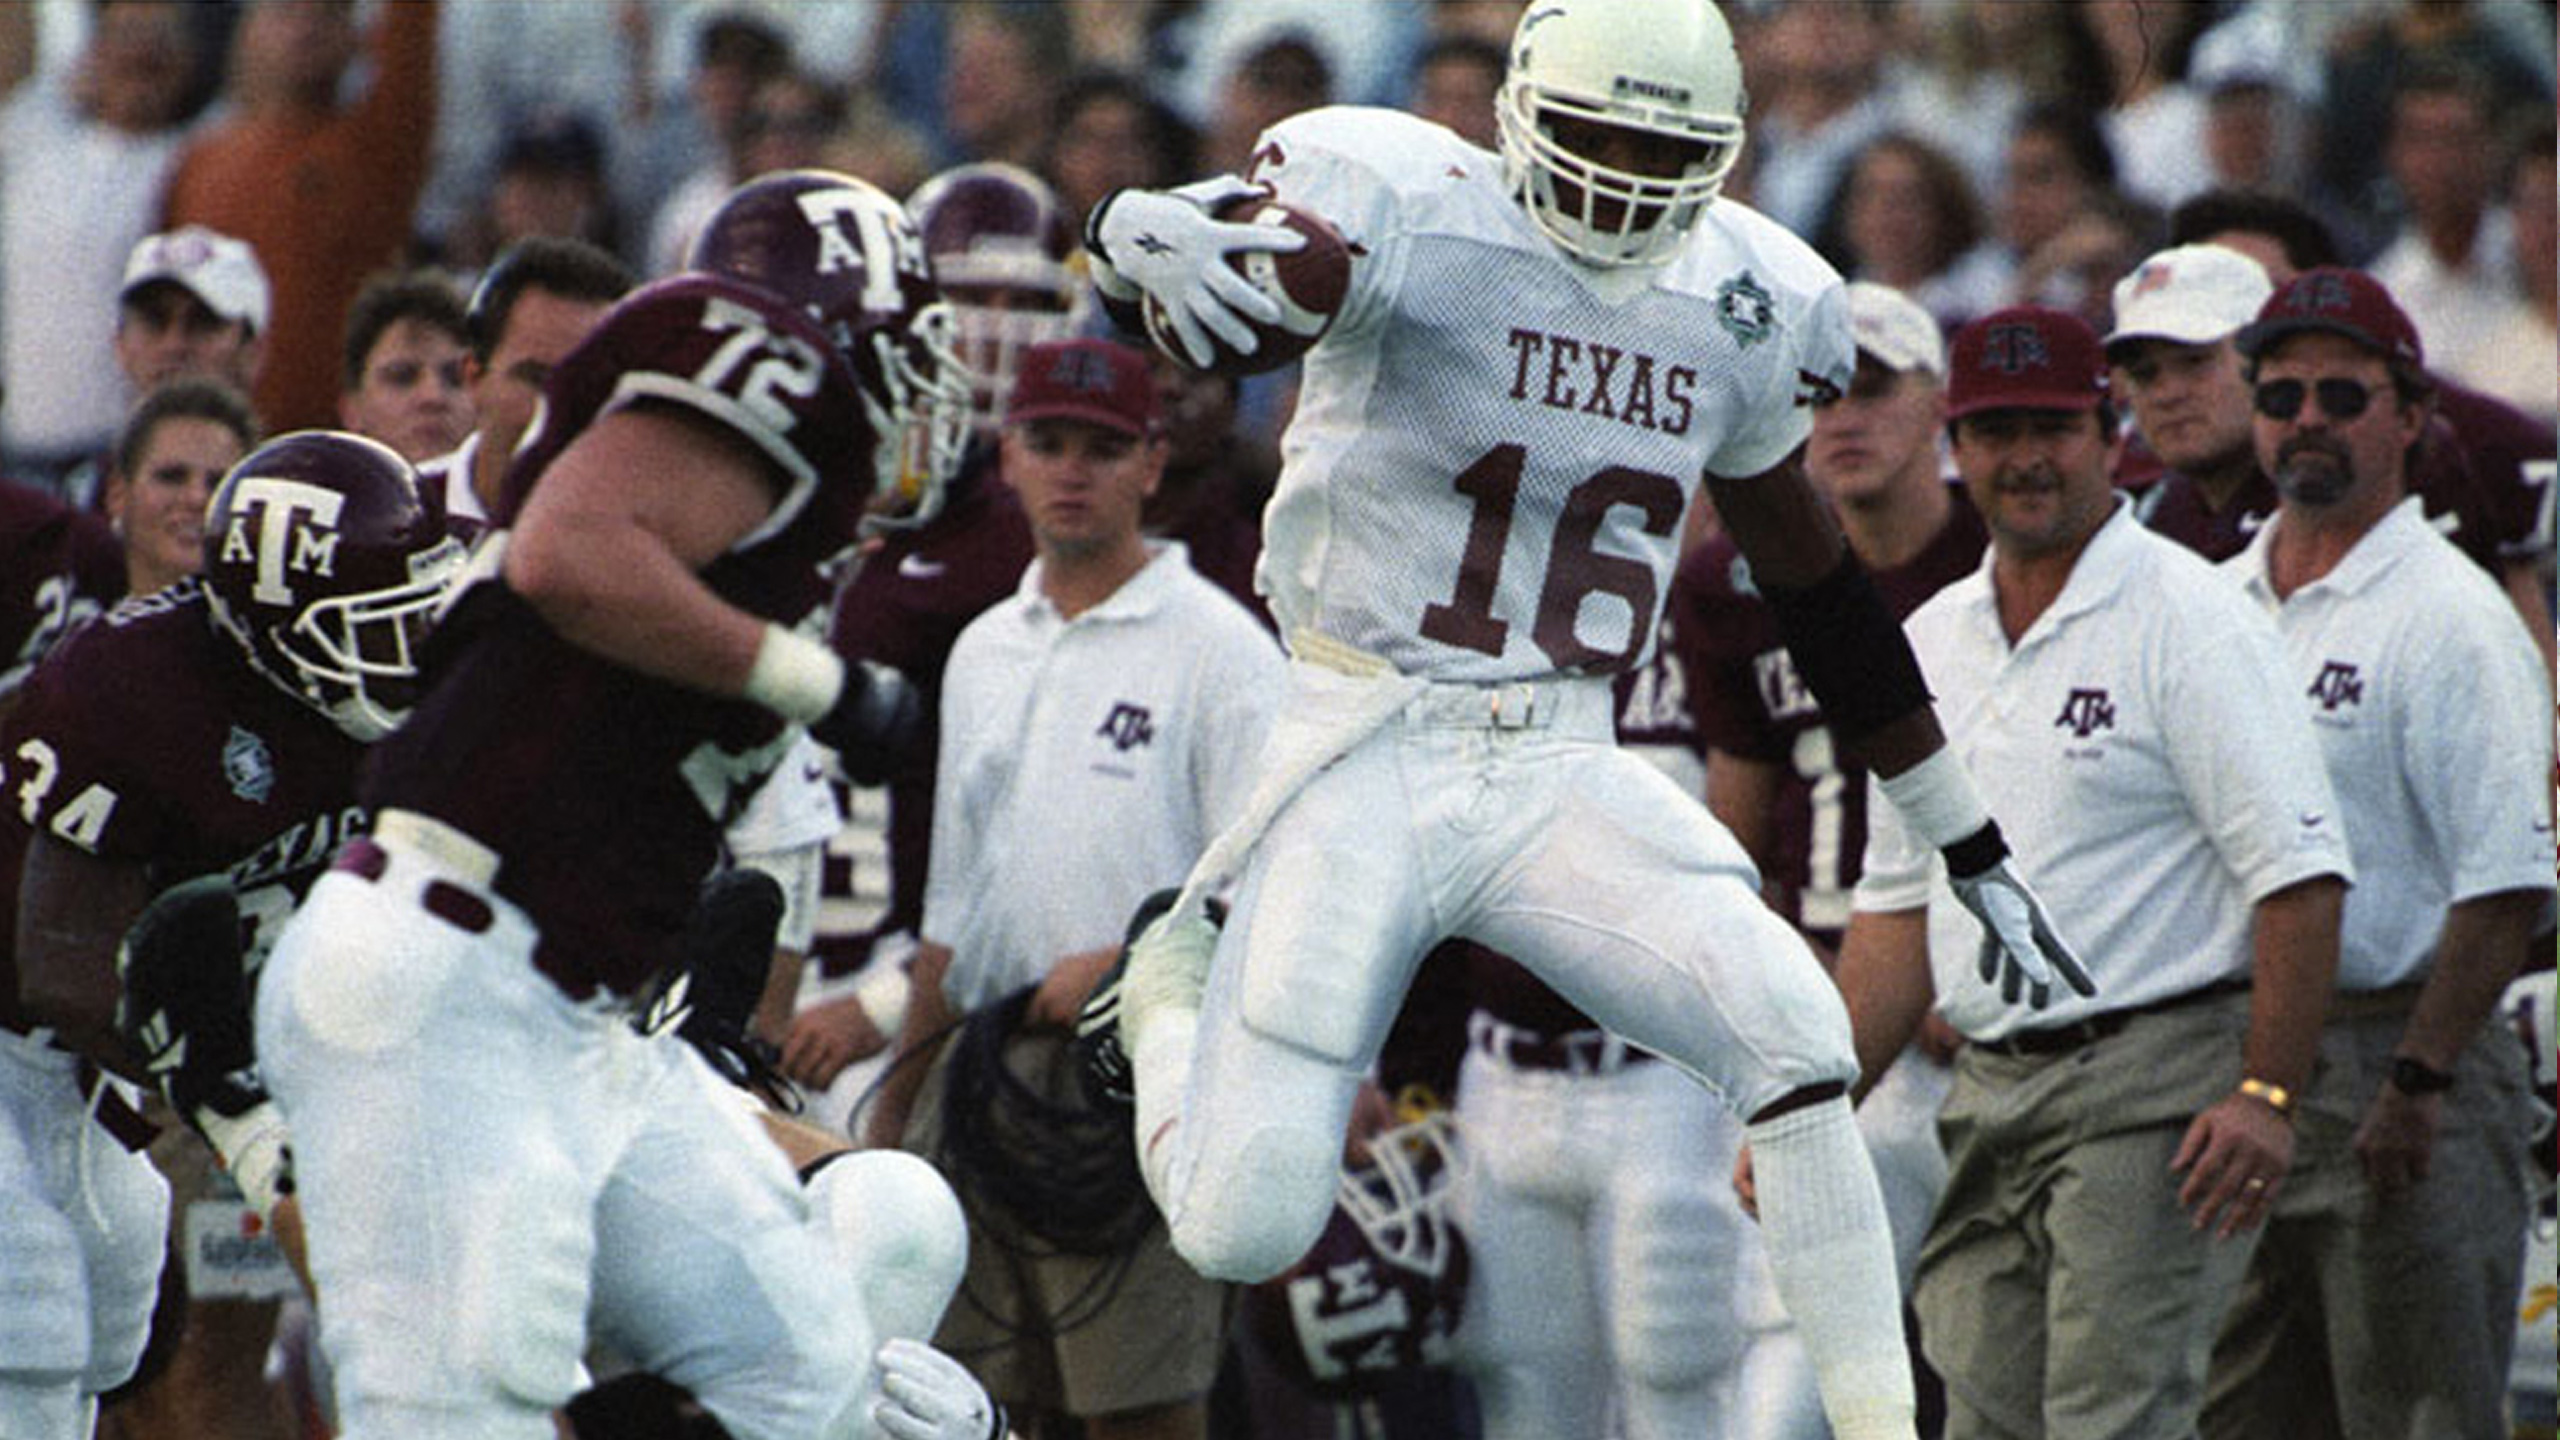 Texas Longhorns vs. Texas A&M Aggies - 12/2/1995 (re-air)